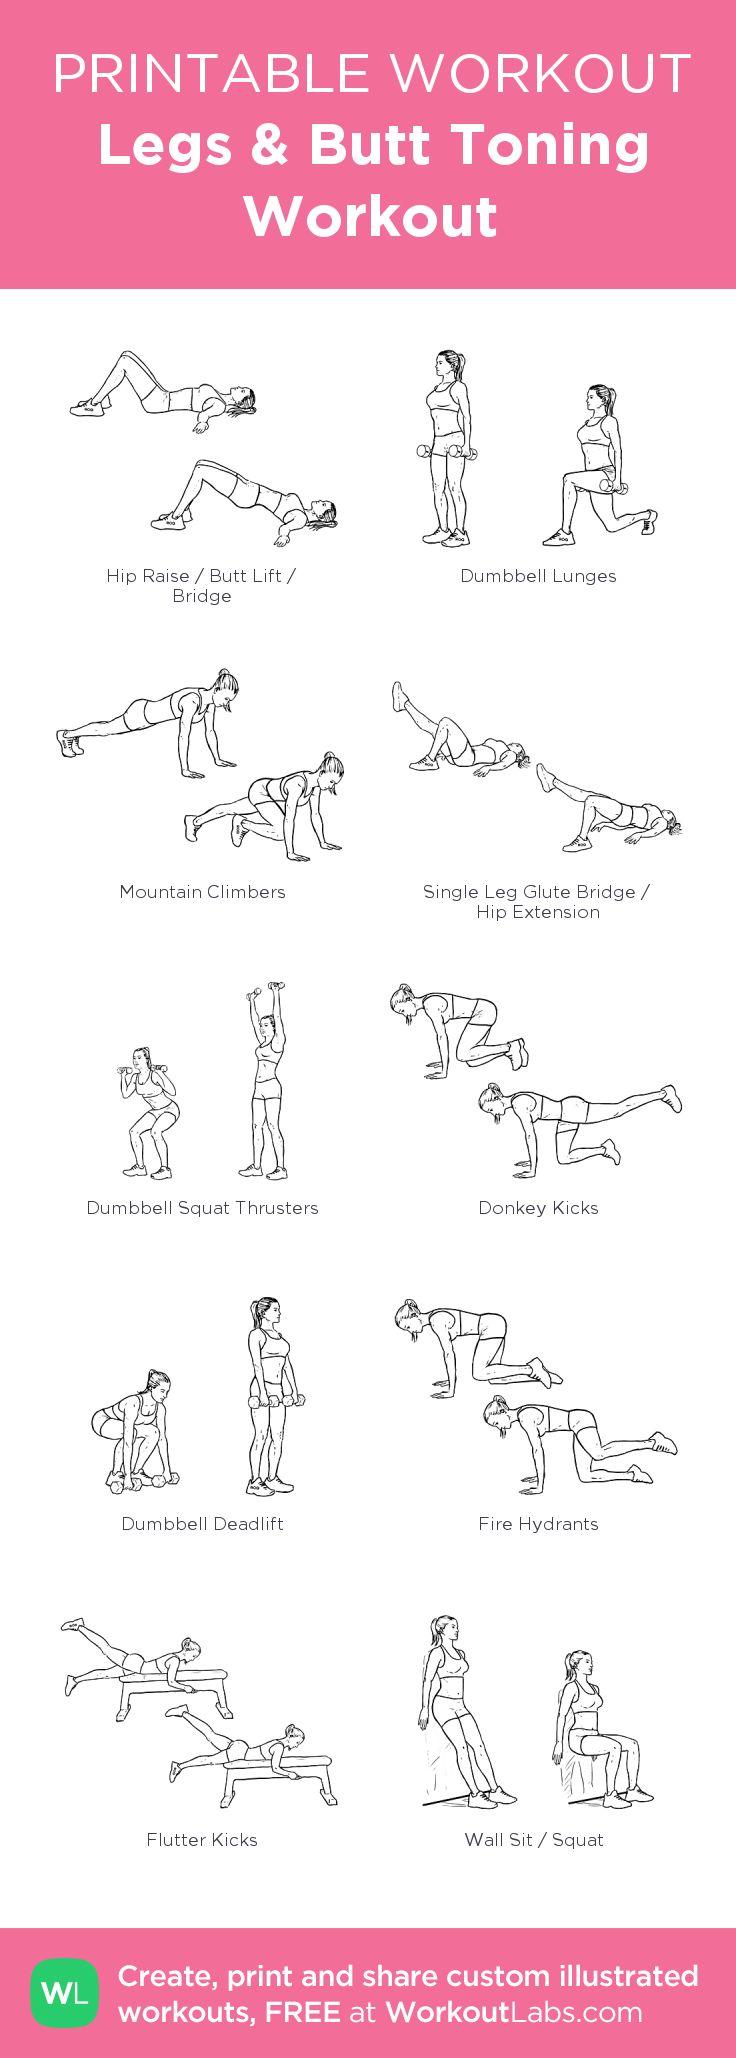 Legs & Butt Toning Workout:my custom printable workout by @WorkoutLabs #workoutlabs #customworkout Do each workout for 1 minute Repeat as many times as you like